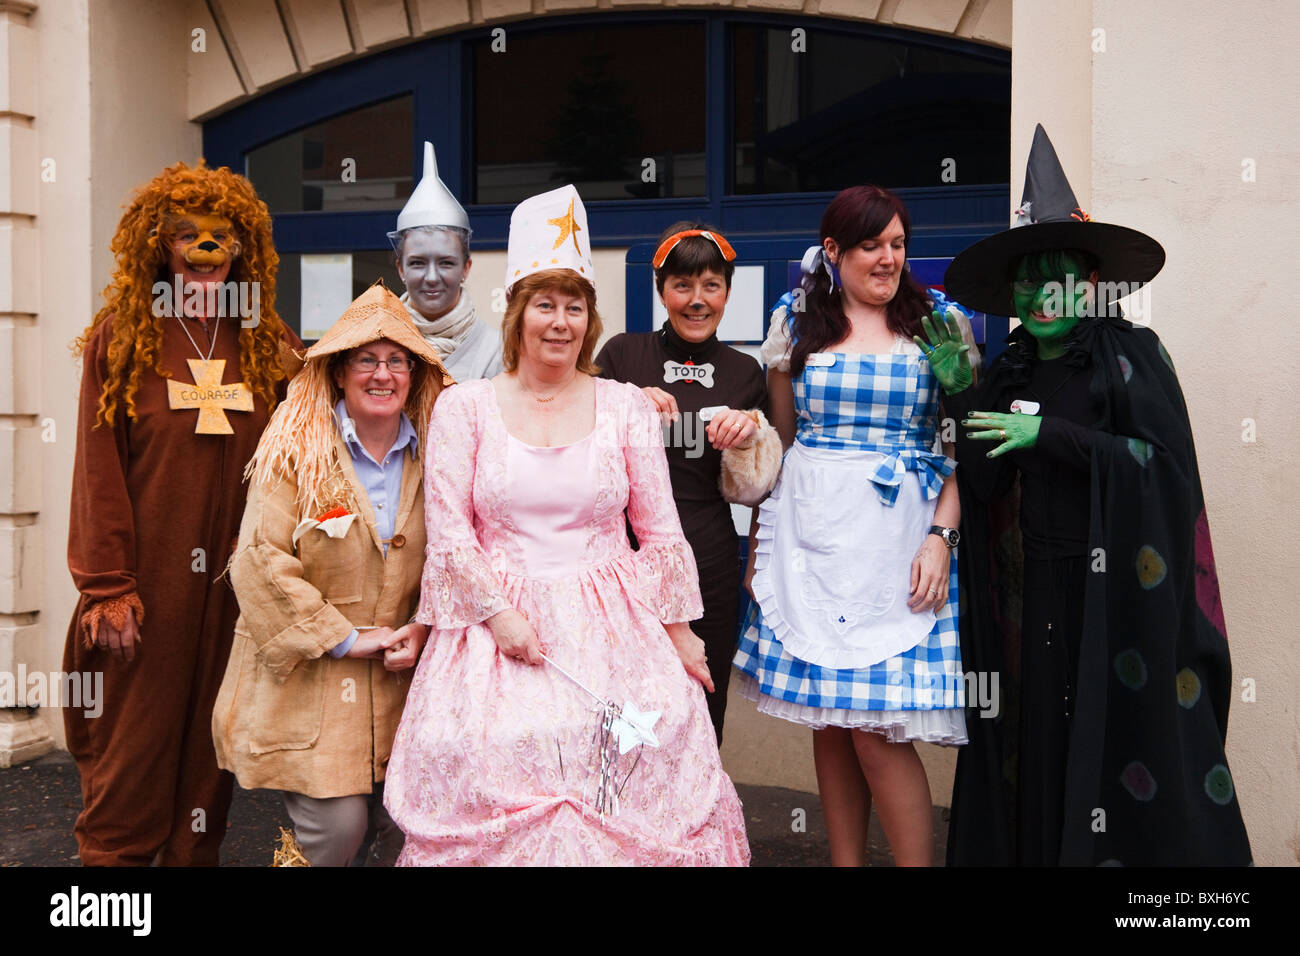 People fund raising for Children in Need charity wearing fancy ...